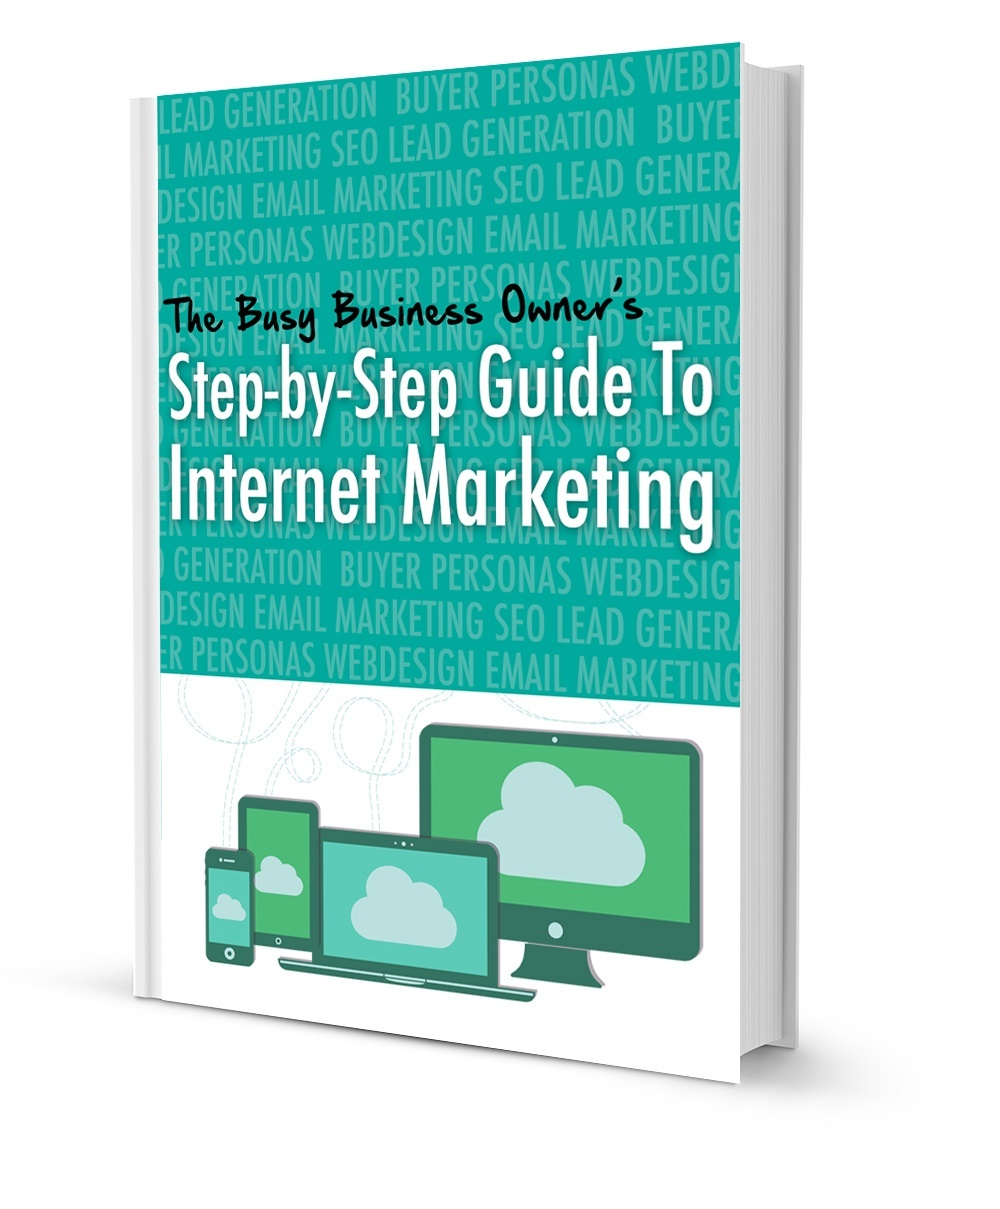 Building a Business That Connects Step-by-Step Guide to Internet Marketing